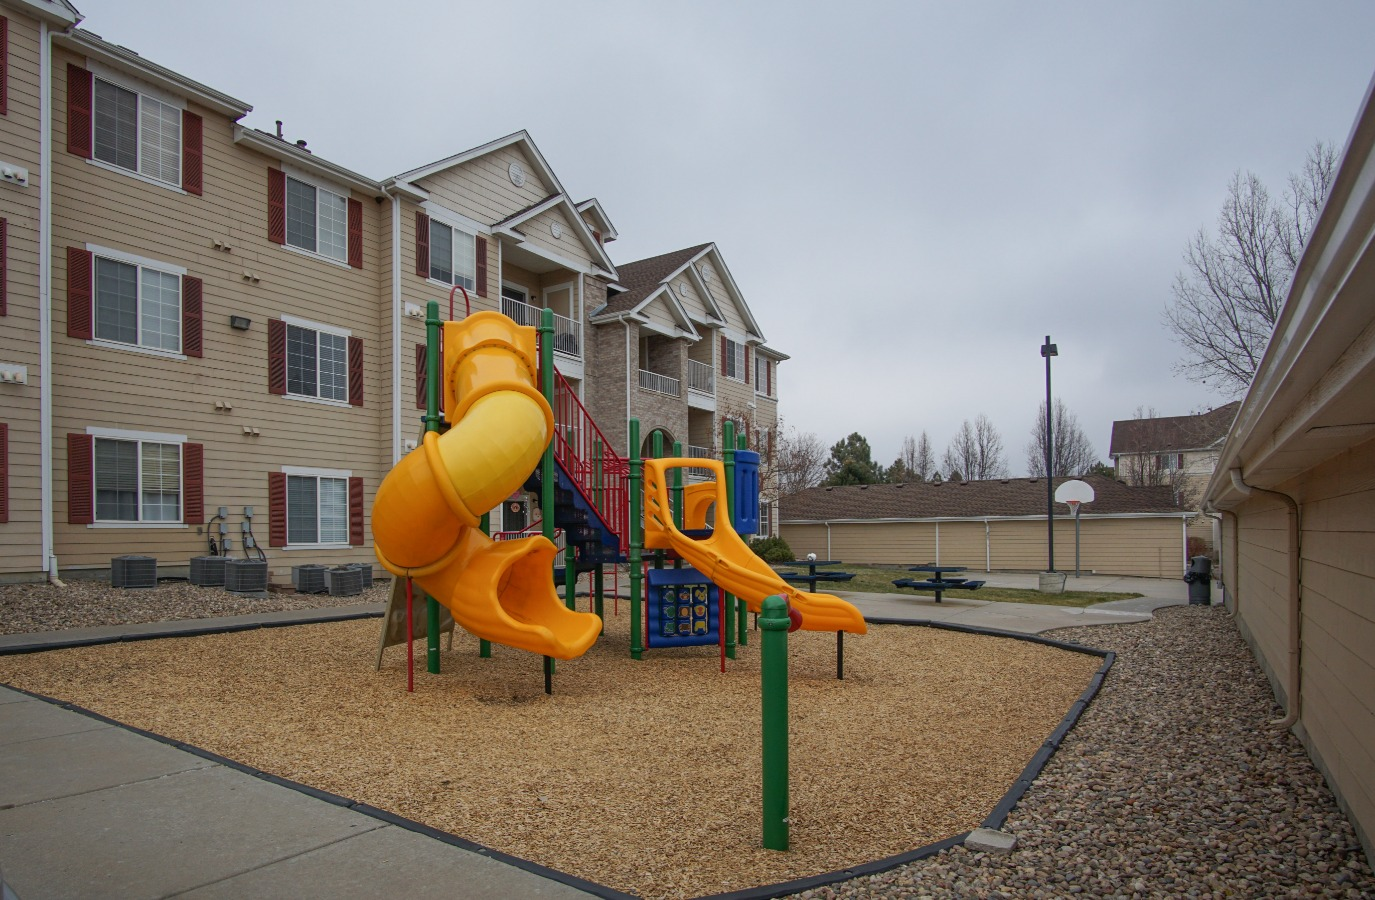 Great playground space